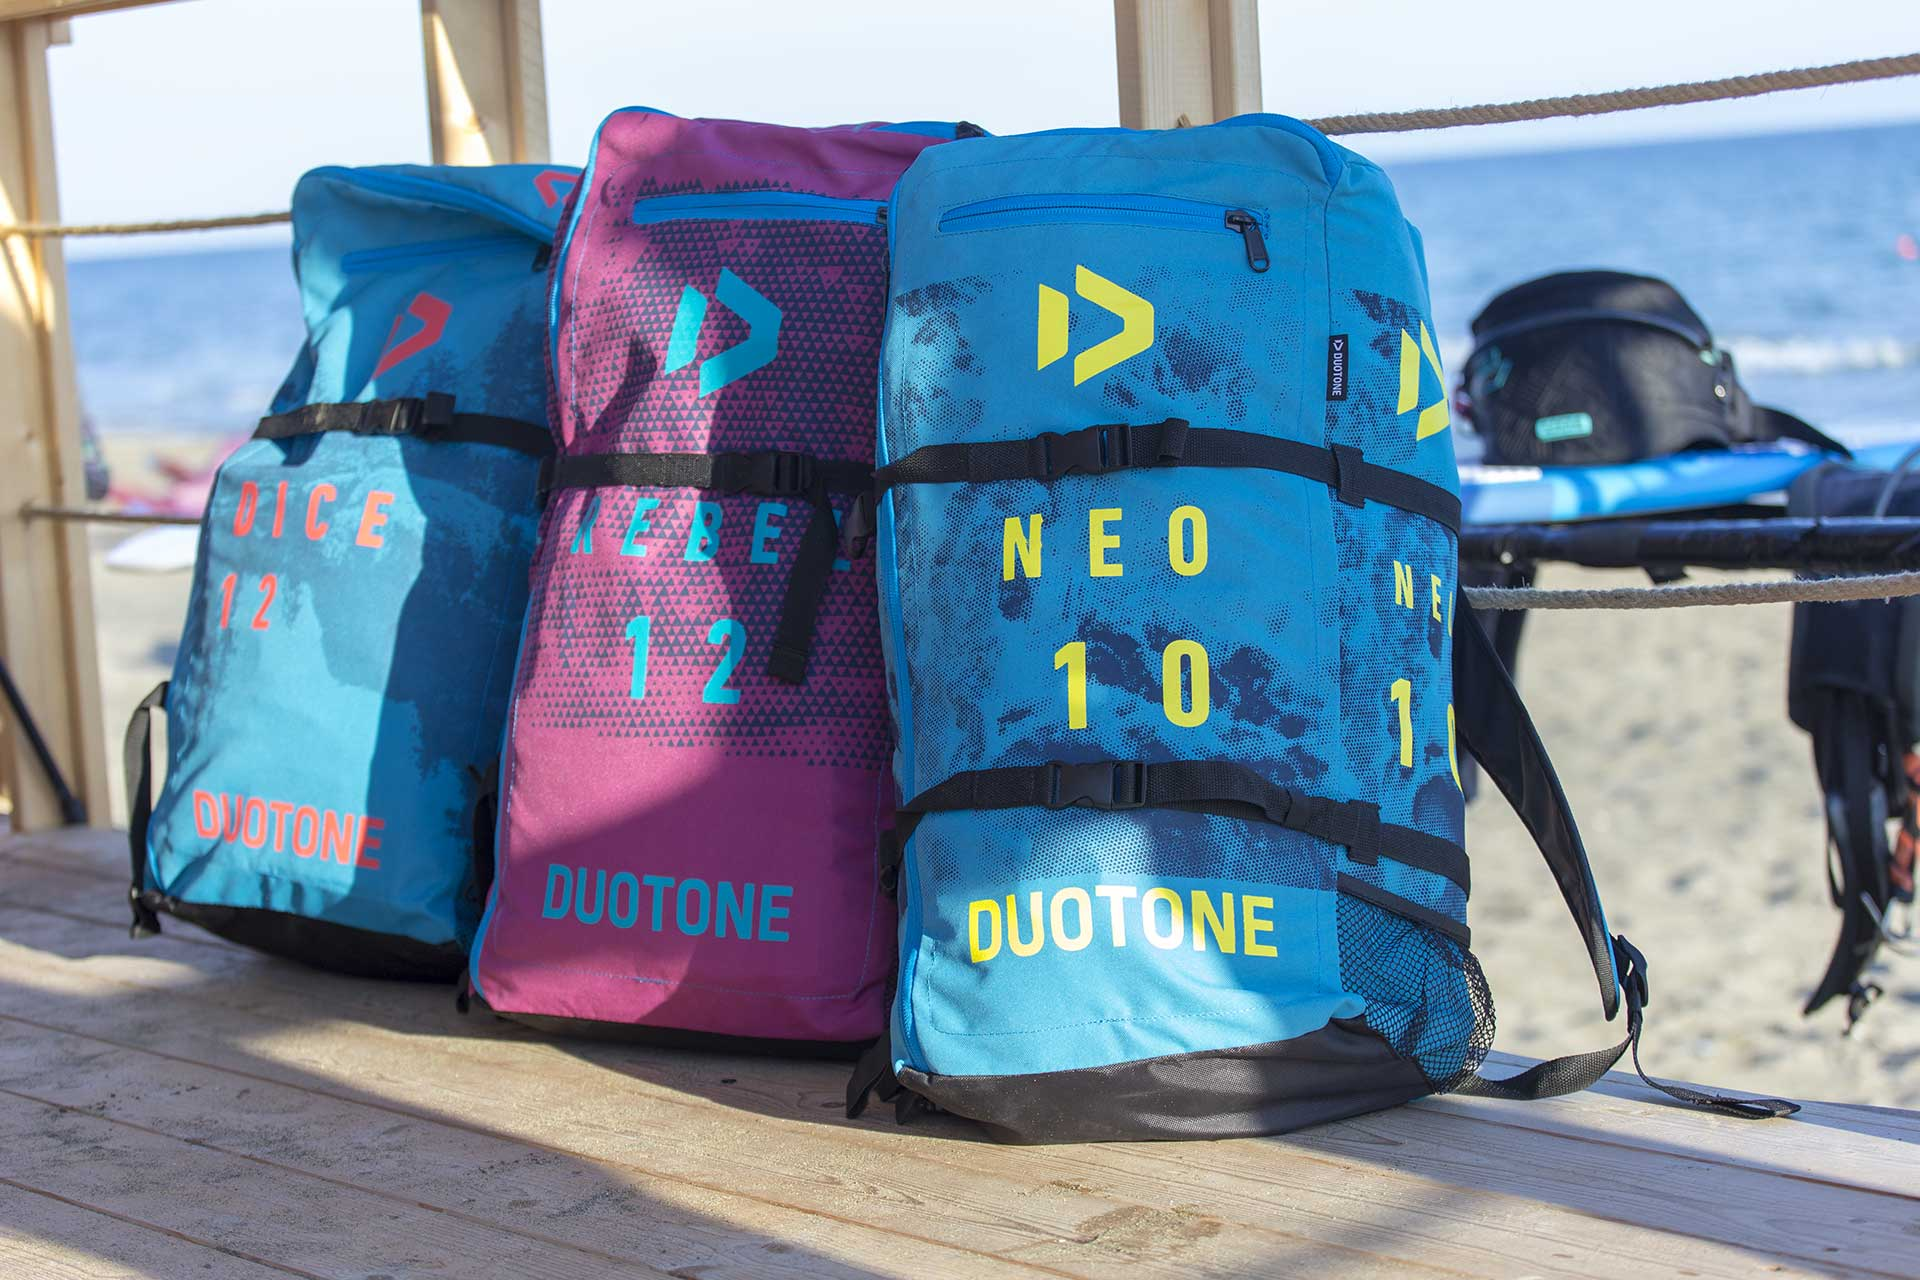 How to choose the right equipment after a kitesurfing course